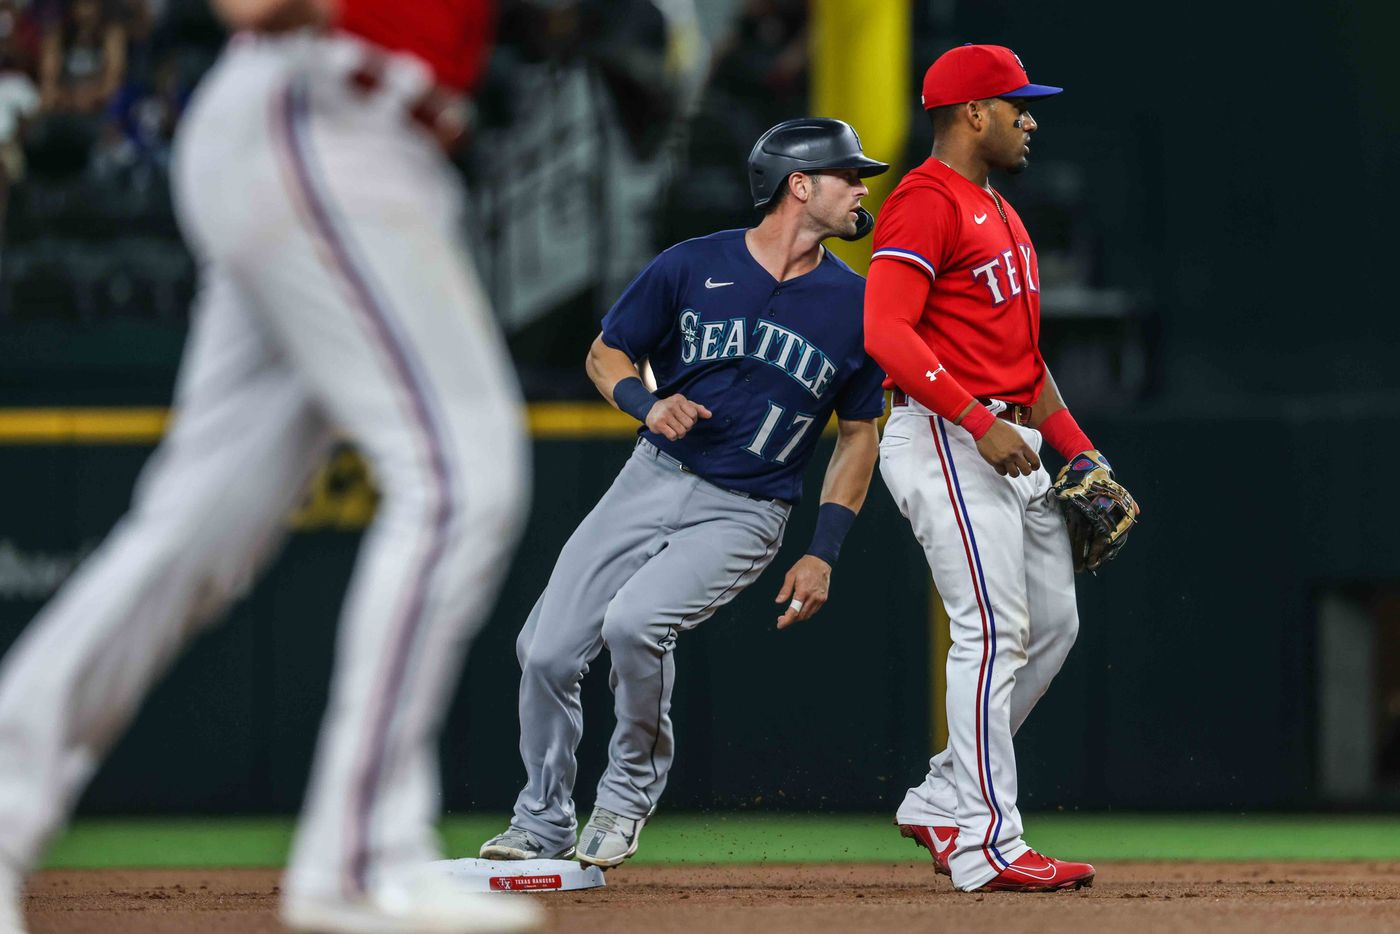 Seattle Mariners Mitch Haniger (17) reaches second base after Ty France (23) is out in first base during the first inning against the Texas Rangers at Globe Life Field in Arlington, Texas, Friday, July 30, 2021. (Lola Gomez/The Dallas Morning News)